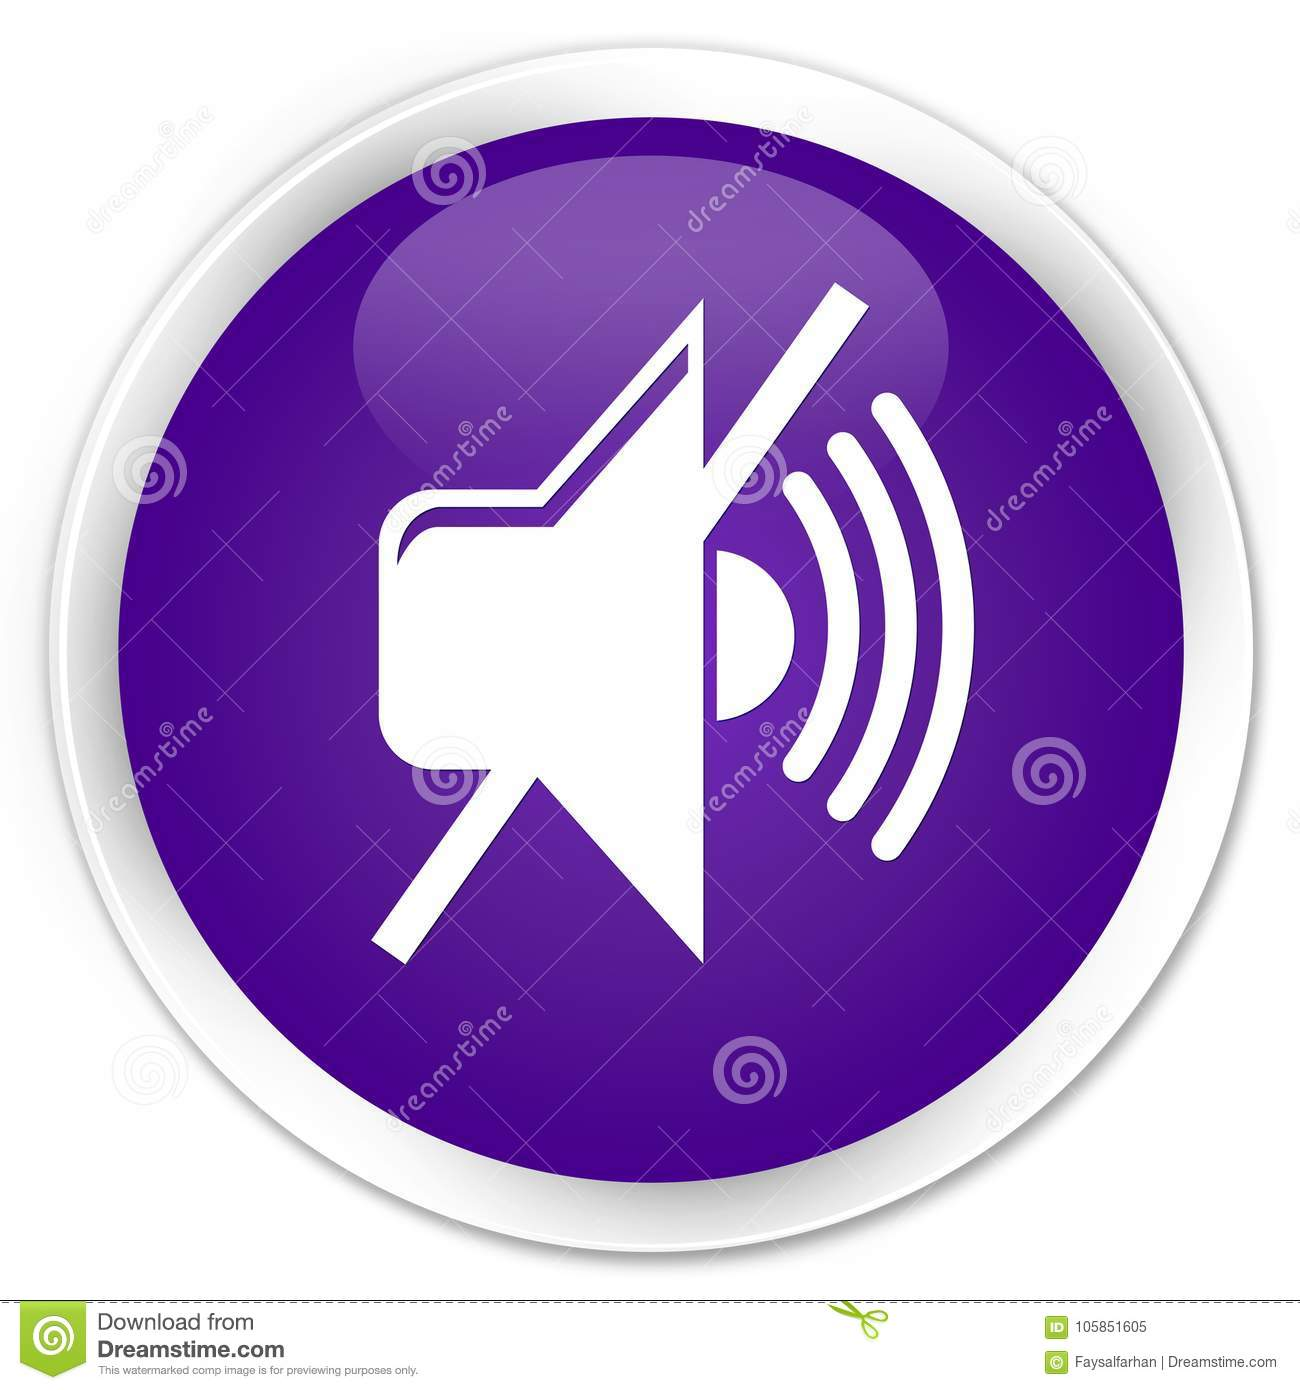 Phone Mute Icon Round Wiring Diagrams 220v3gozonegeneratorozonetubecircuitboard3ghrforwaterplant Volume Premium Purple Button Stock Illustration Rh Dreamstime Com Gps